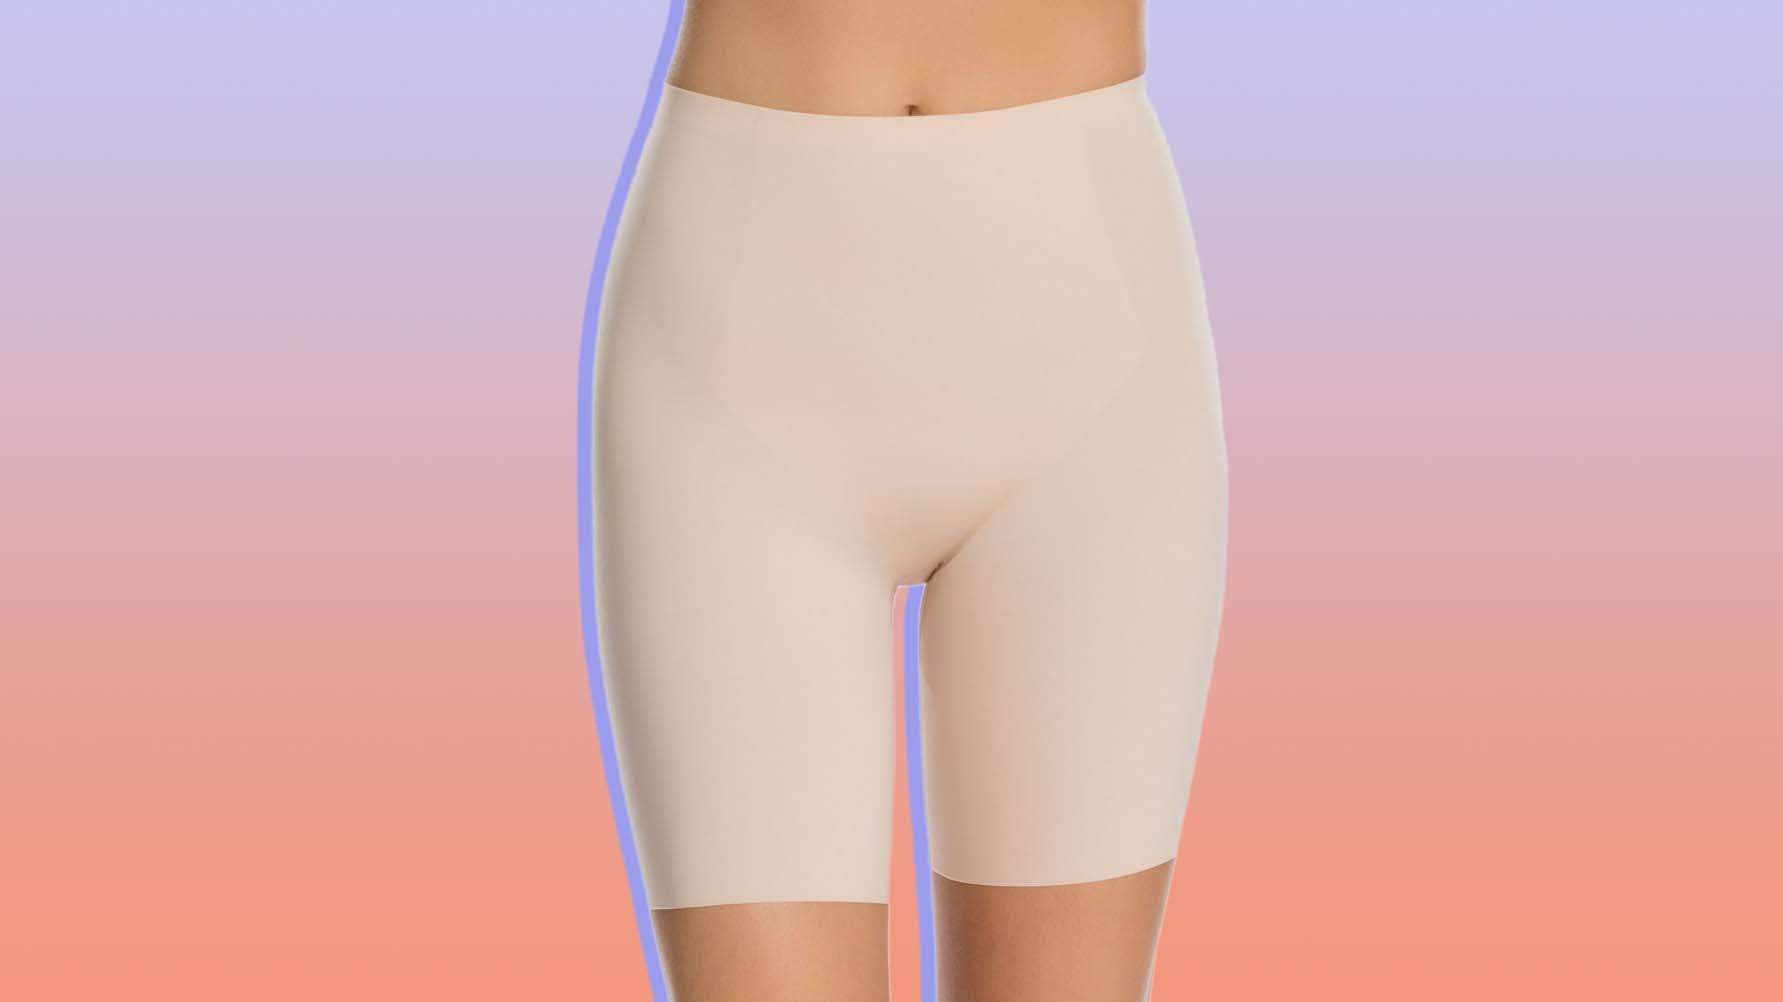 Shapewear Spanx  Deals Buy One Get One Free  2020